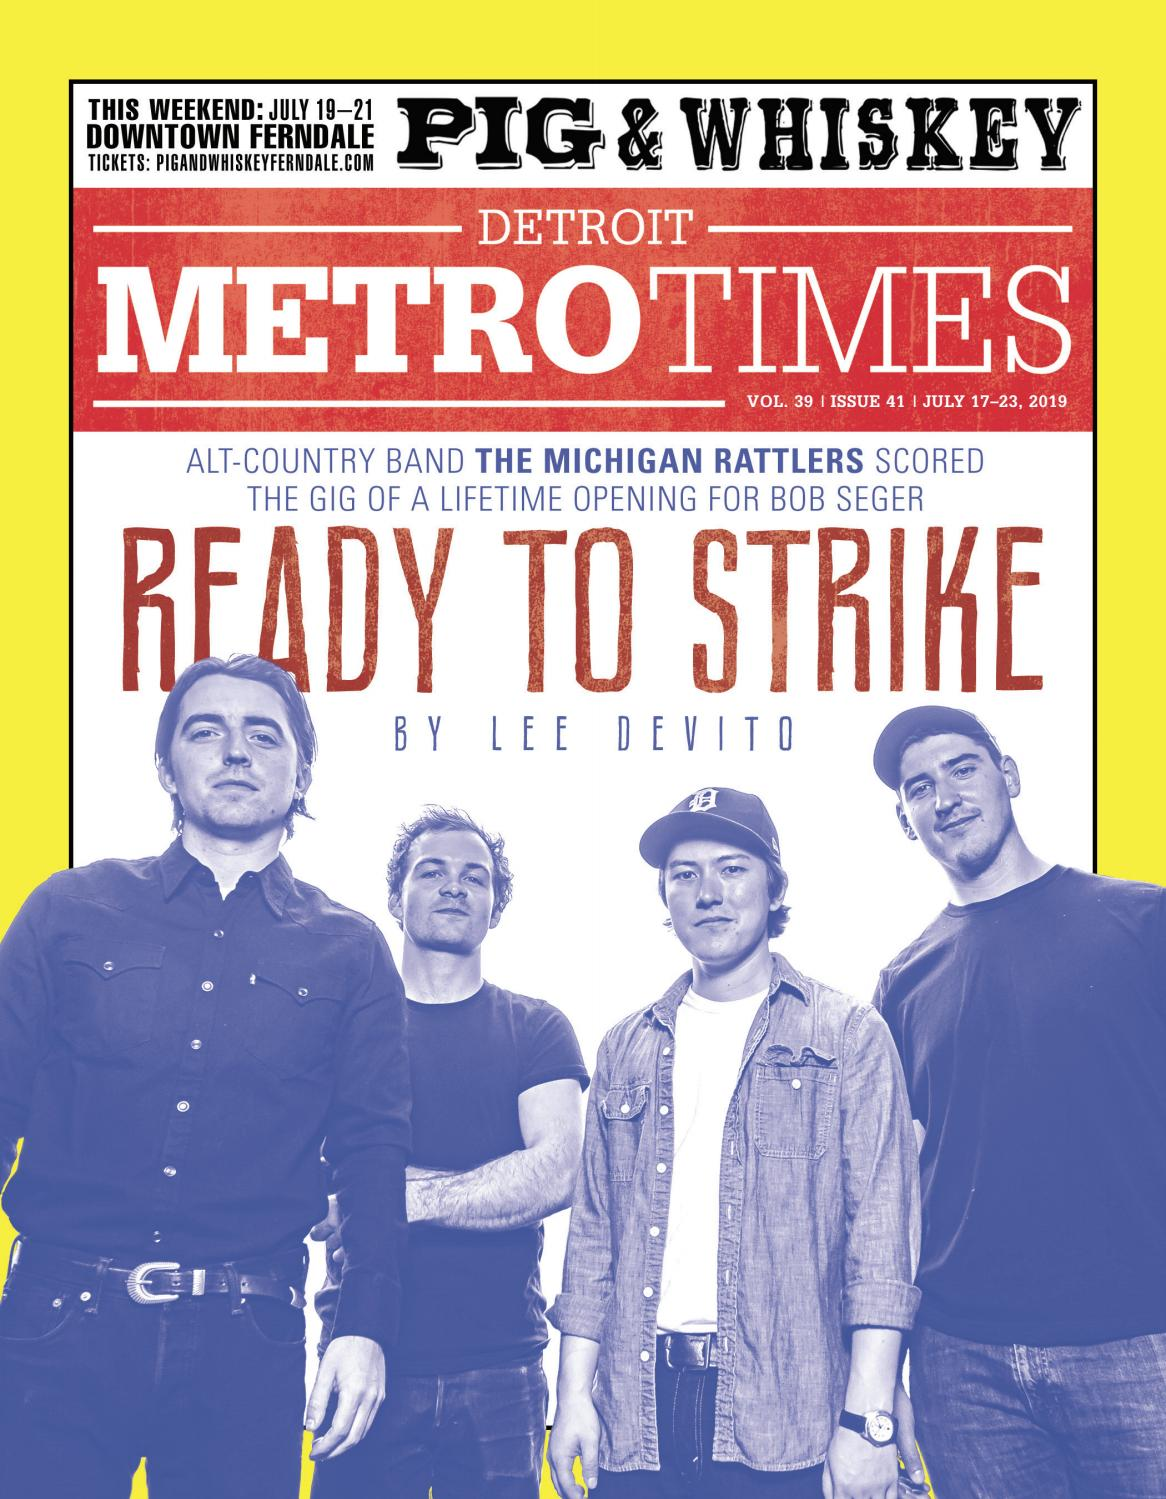 Metro Times 07/17/19 by Euclid Media Group - issuu